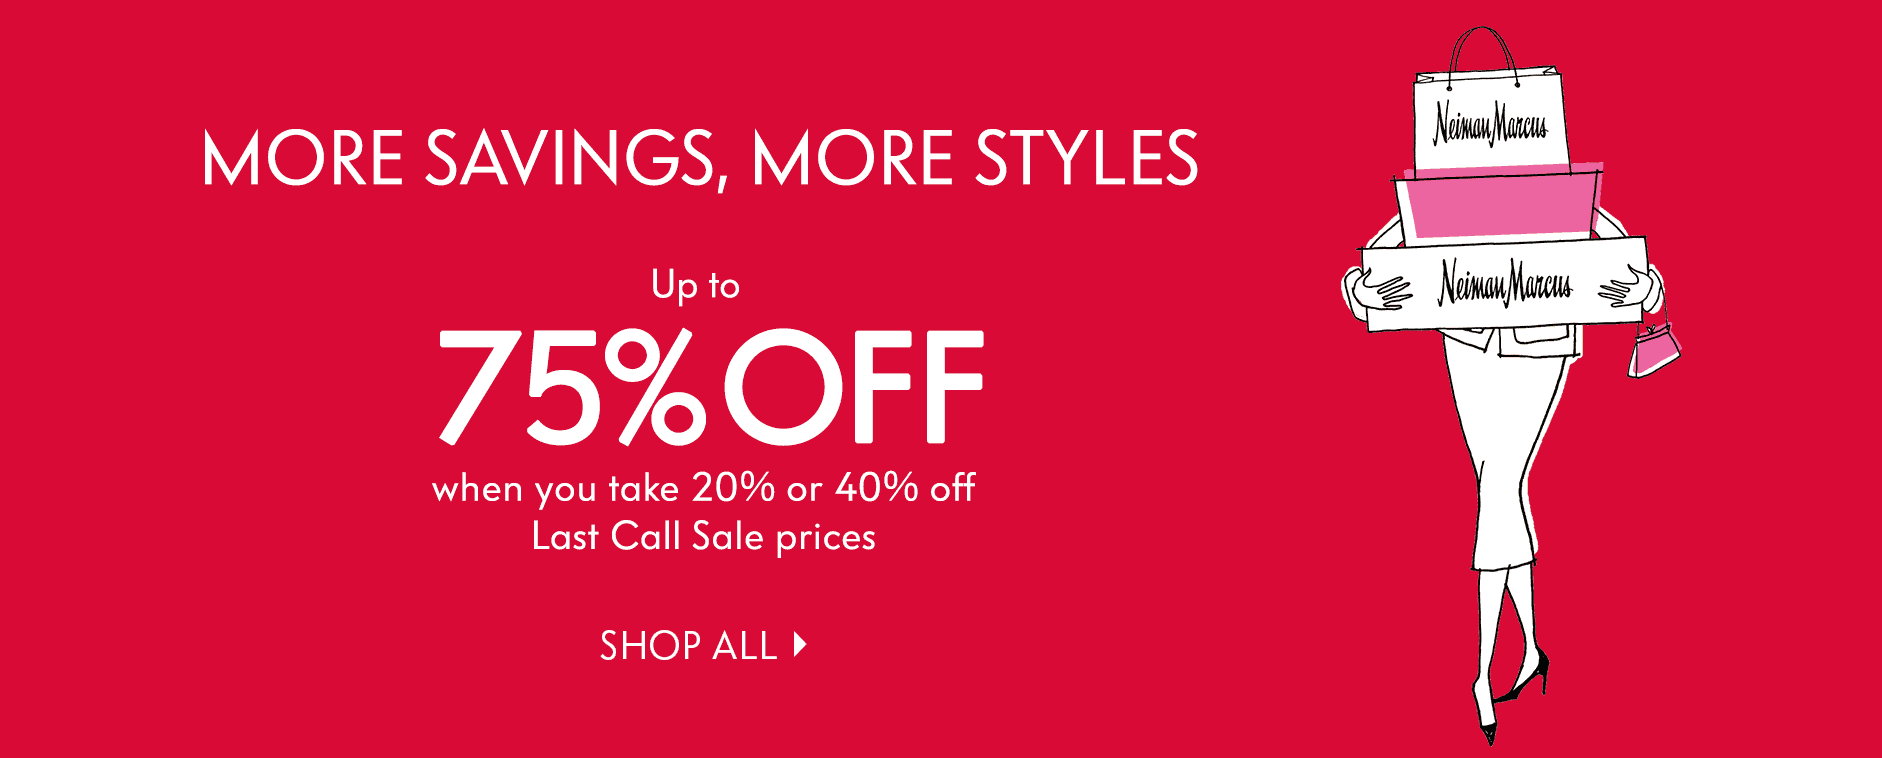 Sale On Sale - Up To 75% Off Sale Prices